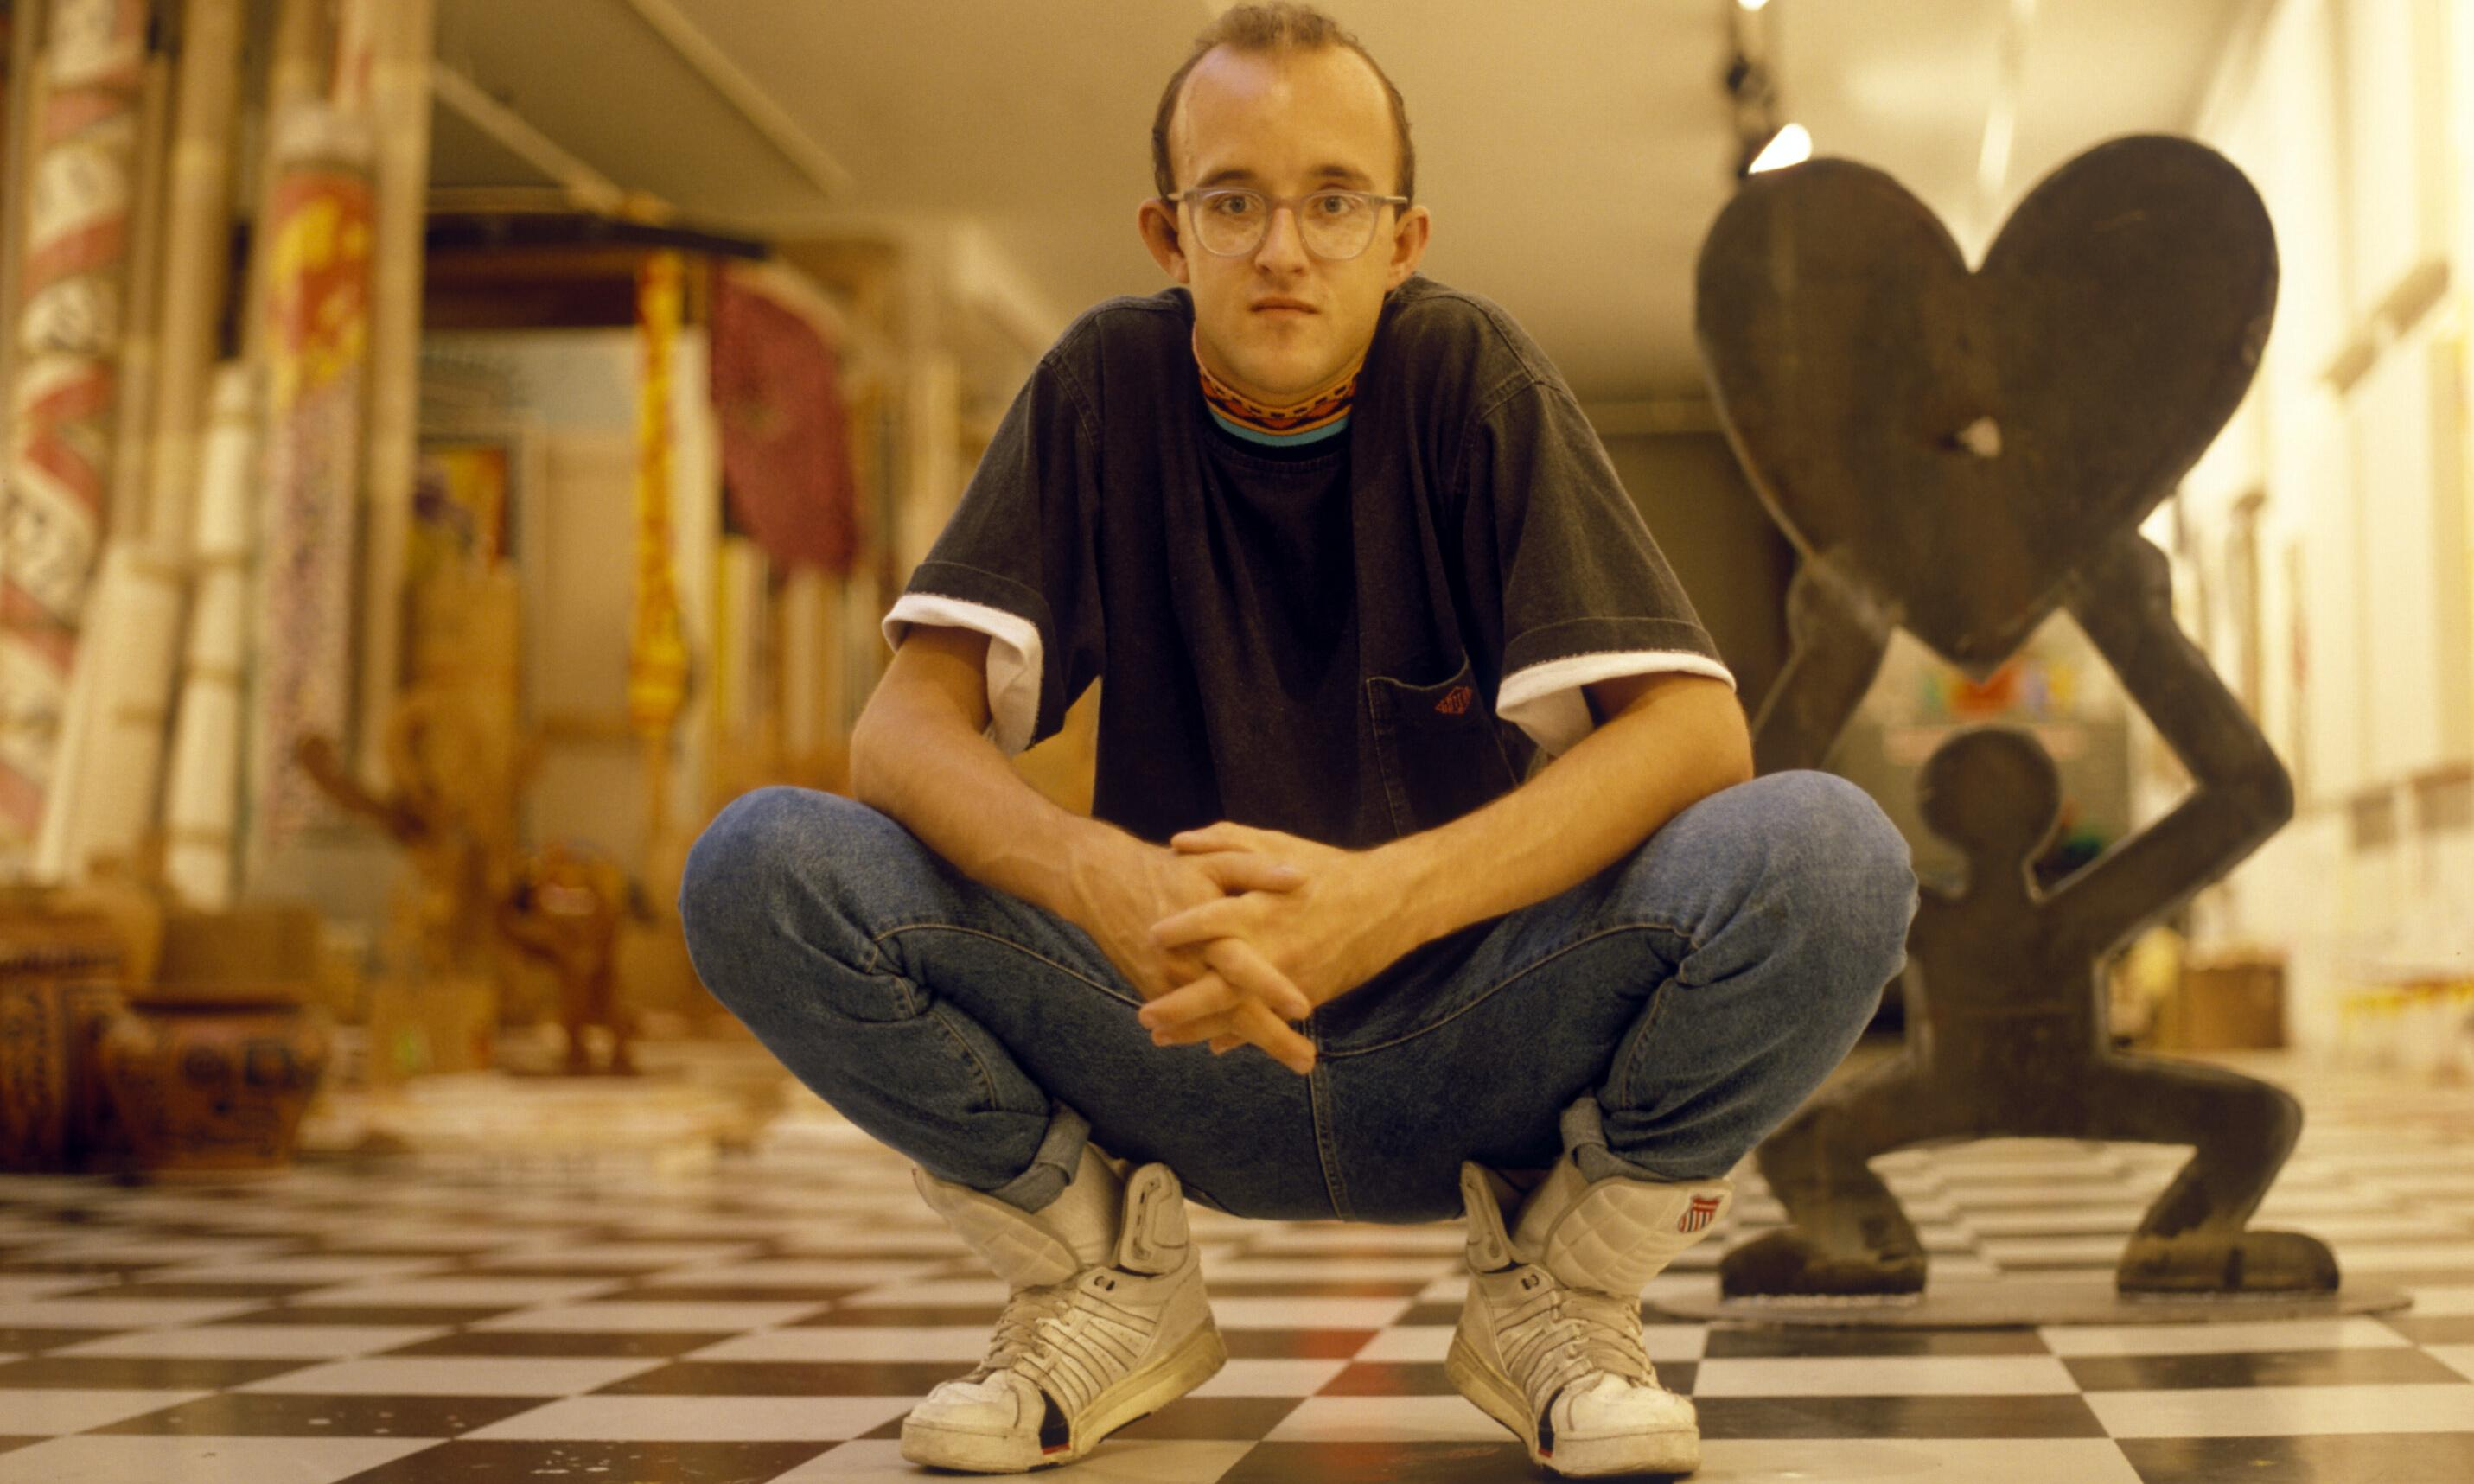 'It's the fun and joy I remember': Keith Haring by his friends